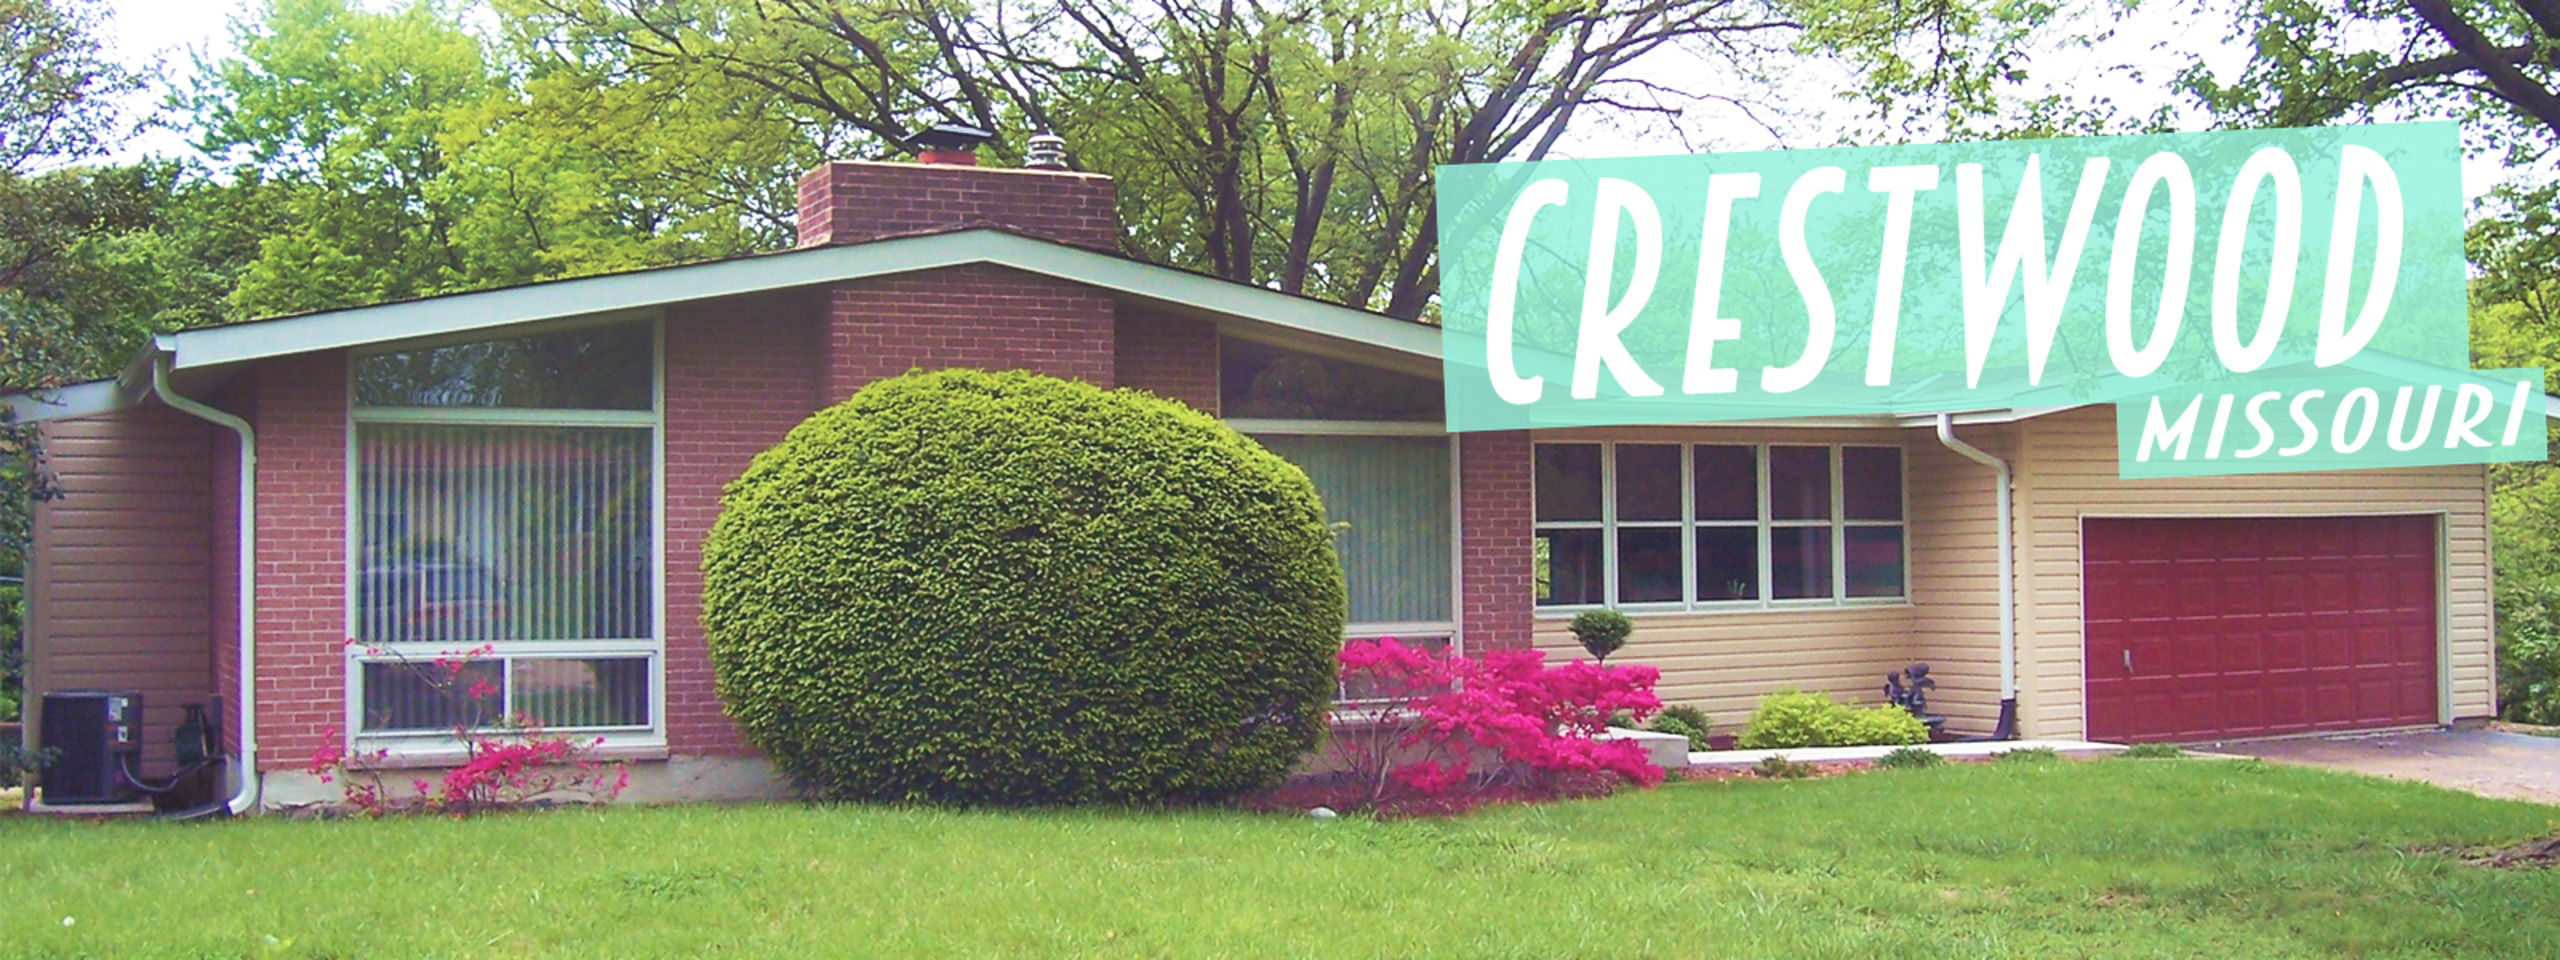 Crestwood Nicely Homes